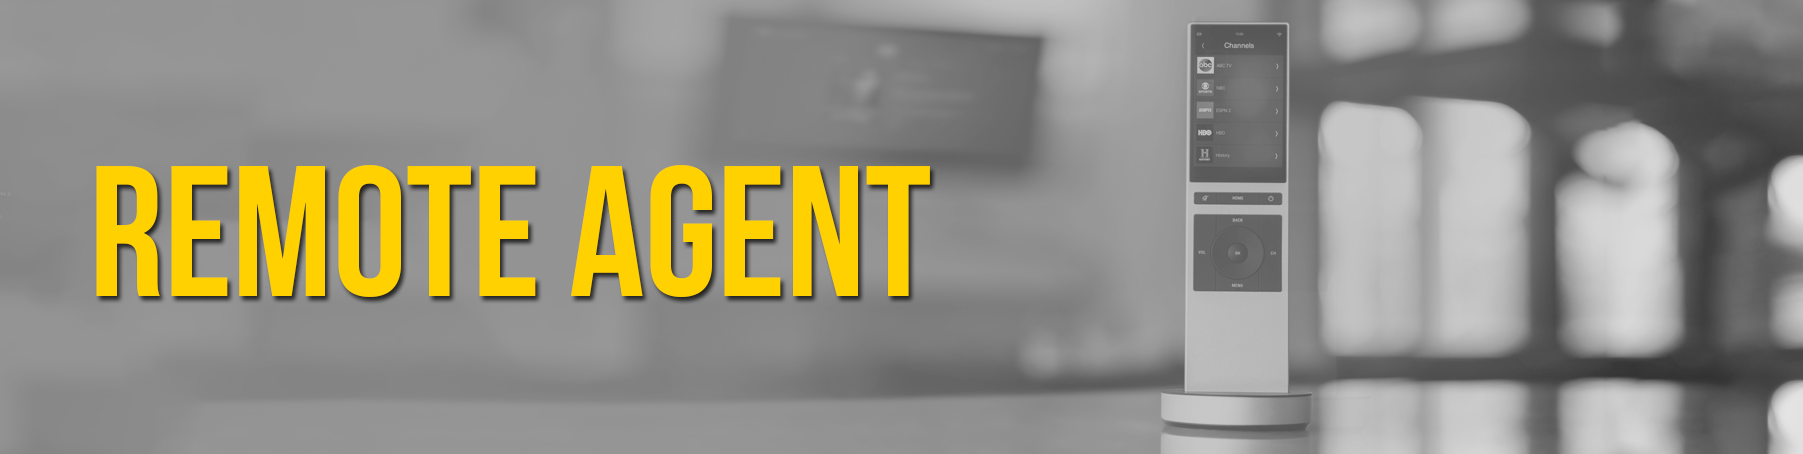 Battery%20Agent.png?1545161150999